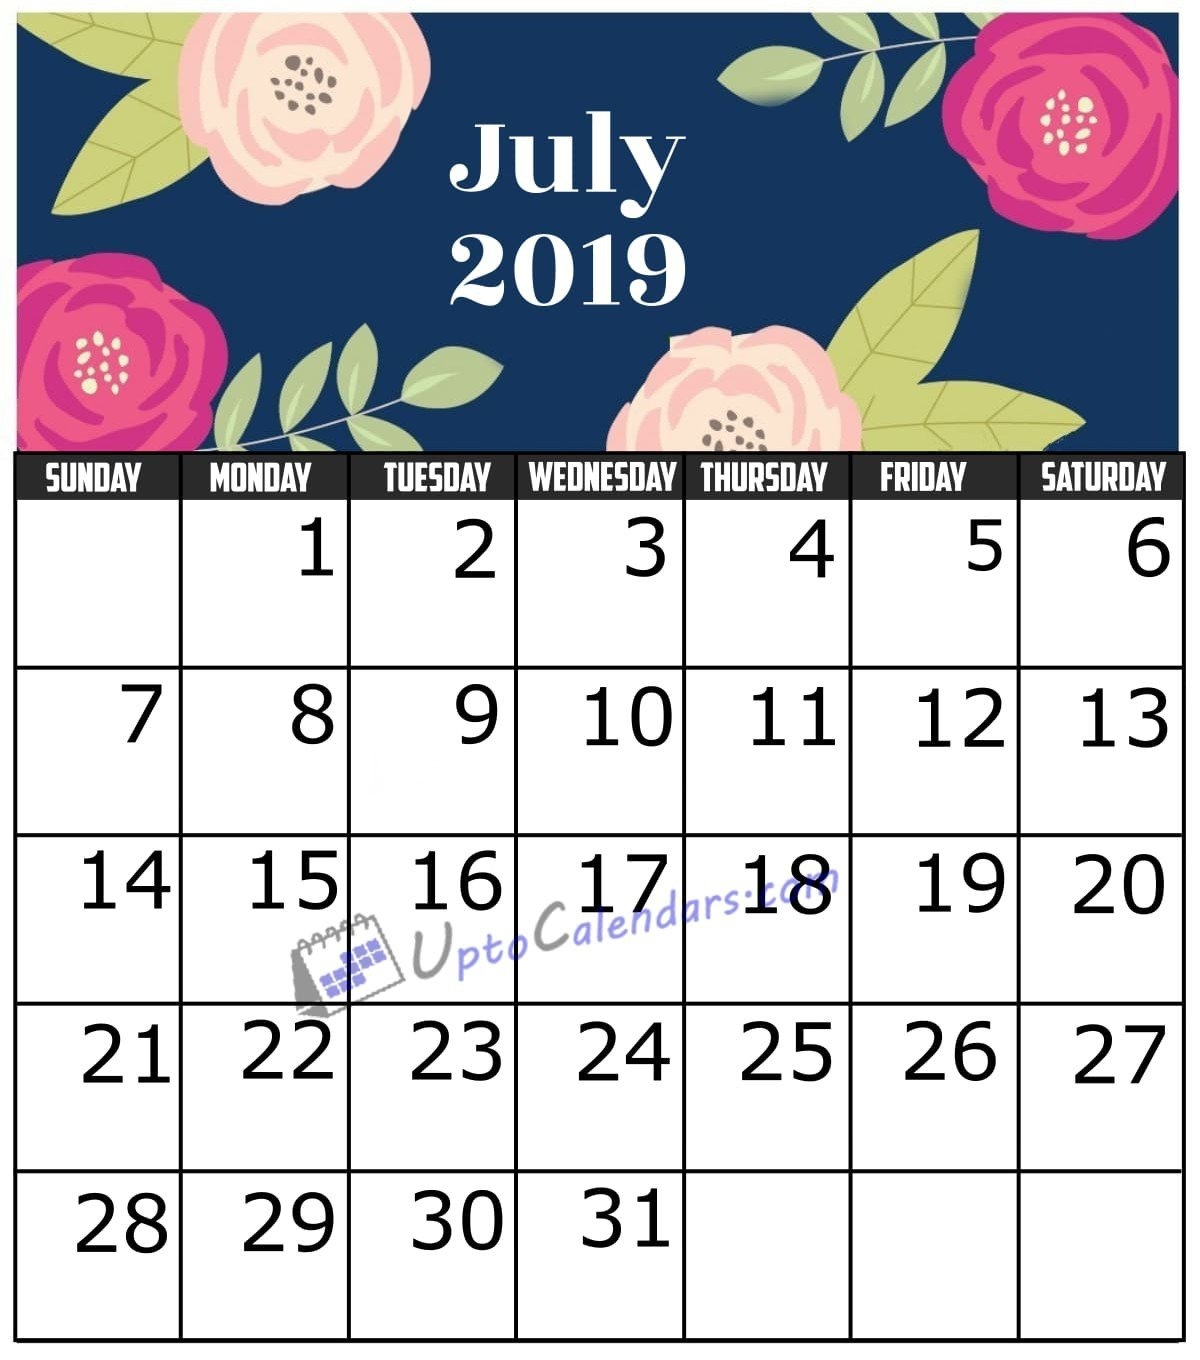 July 2019 Calendar Printable Template With Holidays Pdf Word Excel July 6 2019 Calendar